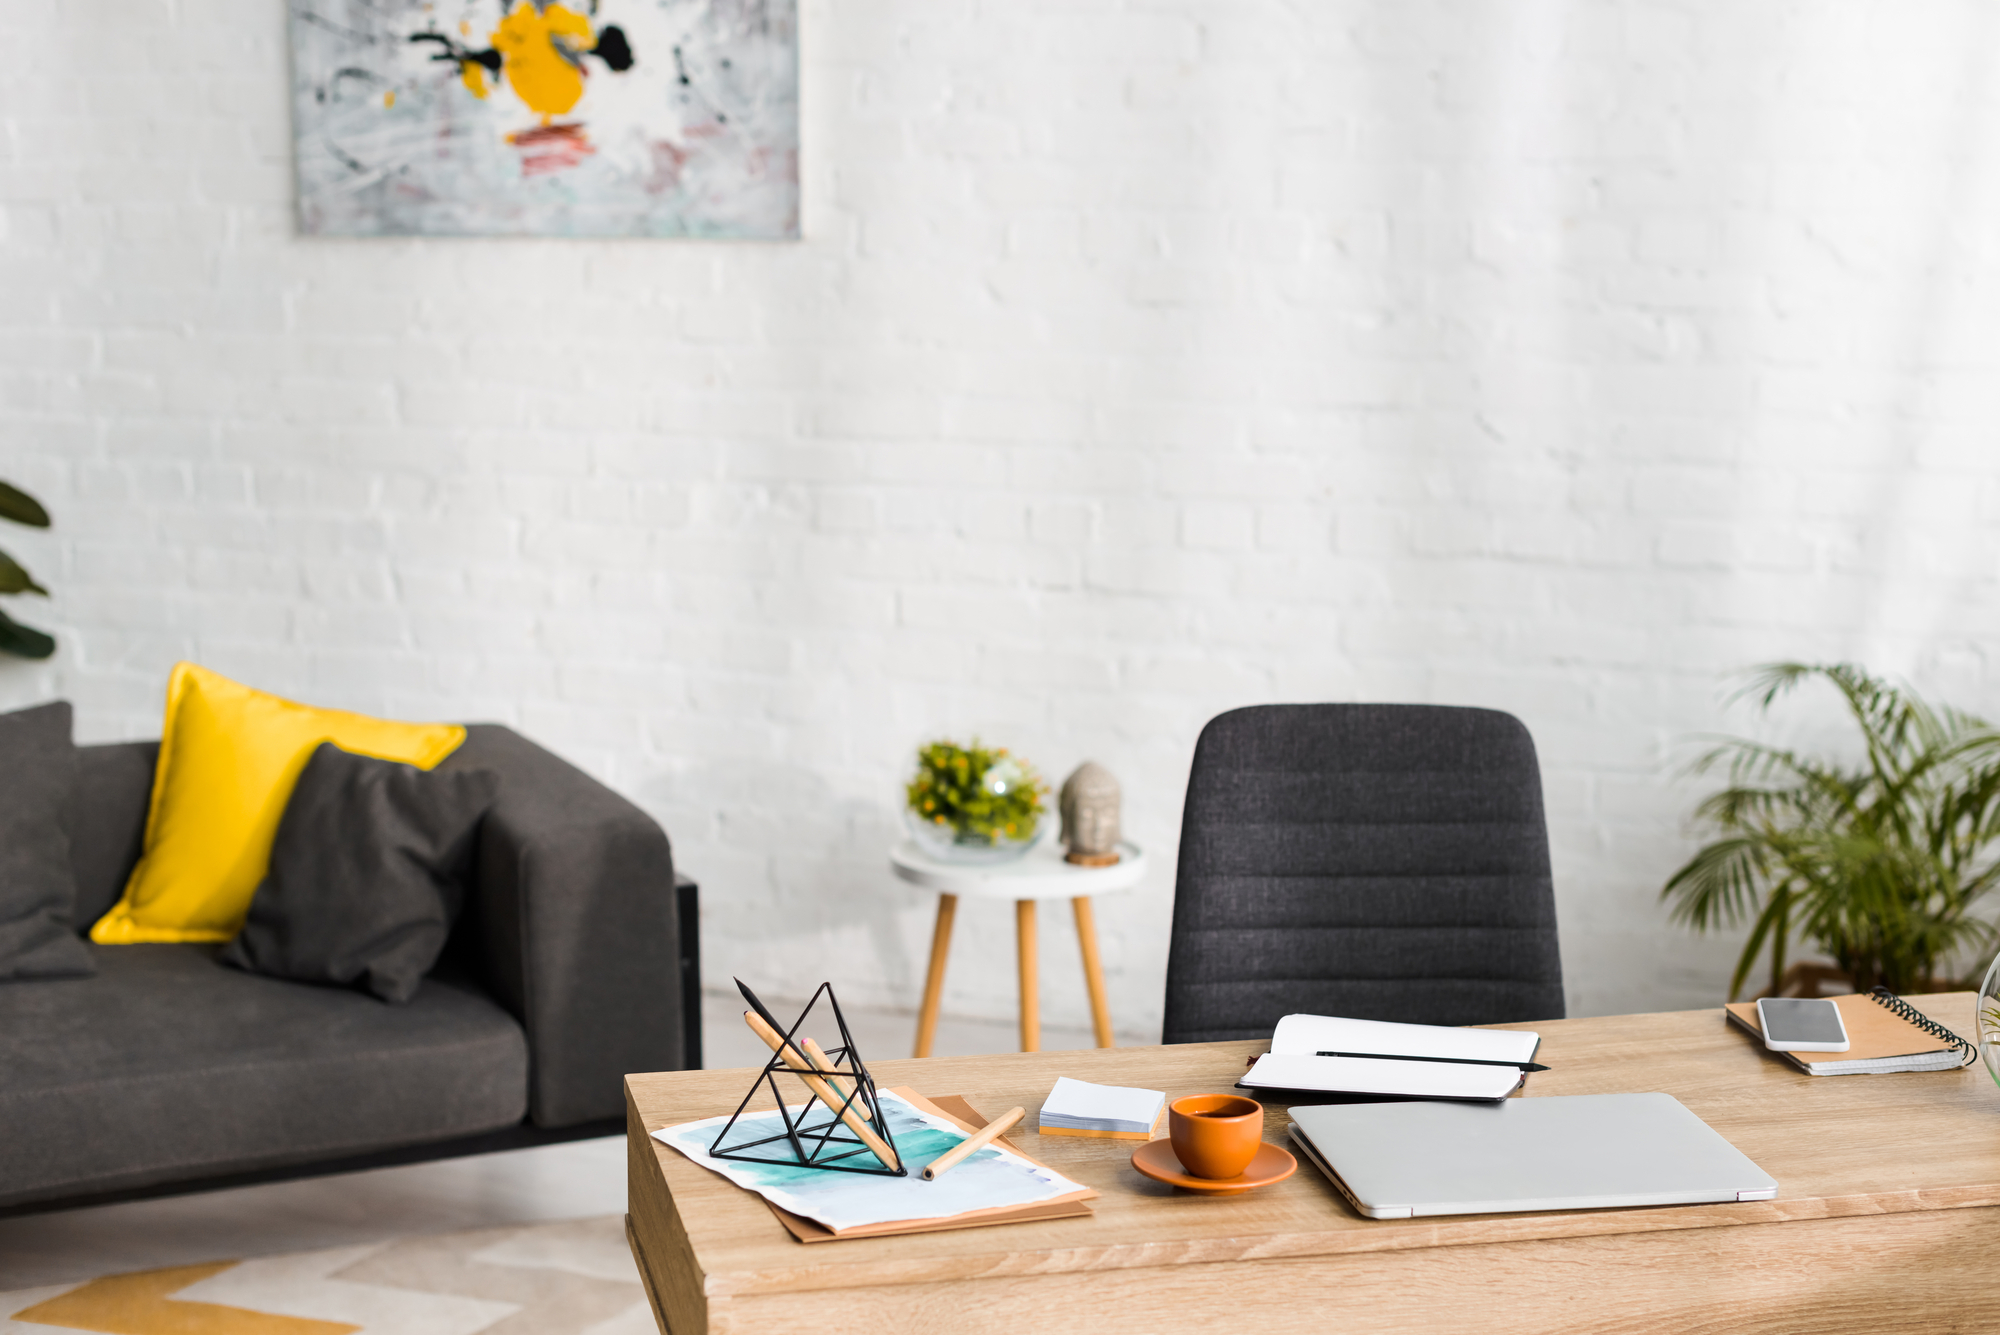 email copywriter desk with paper weight, pens, paper, chair, plant, desk, and couch